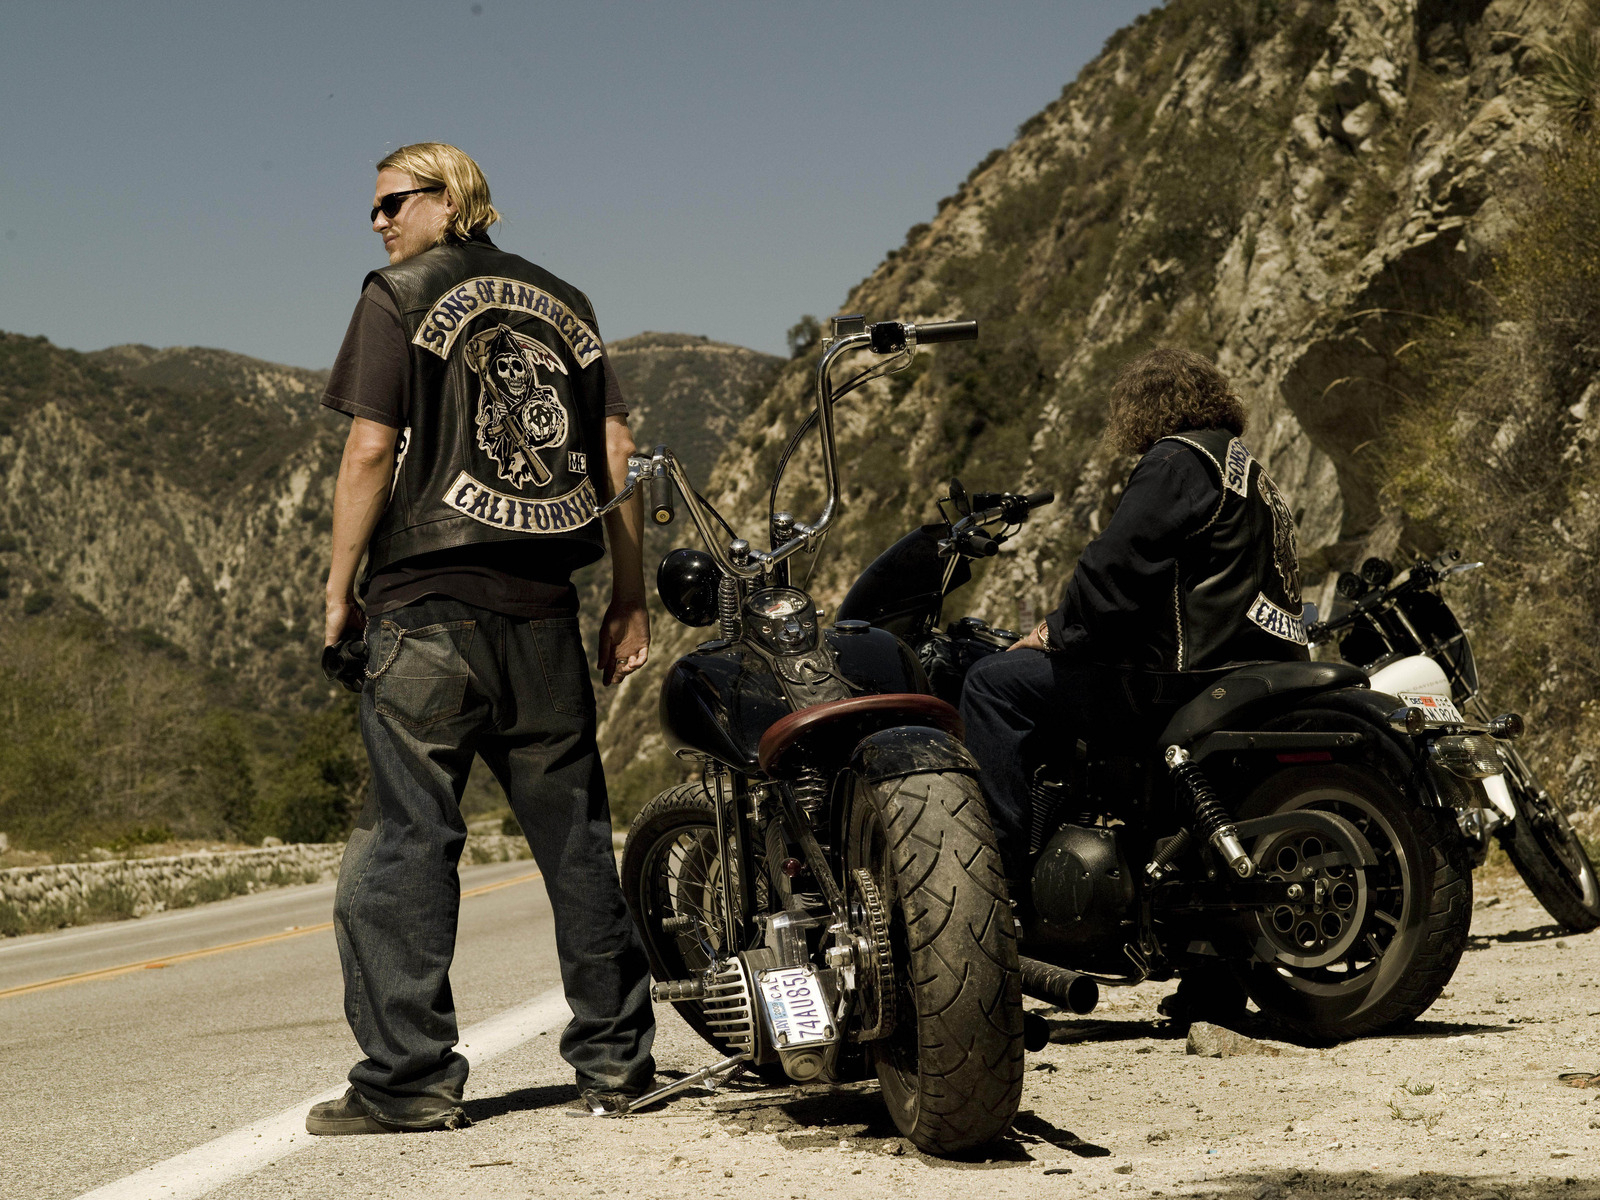 Bikes Of Sons Of Anarchy Jax The Bikes Sons of Anarchy